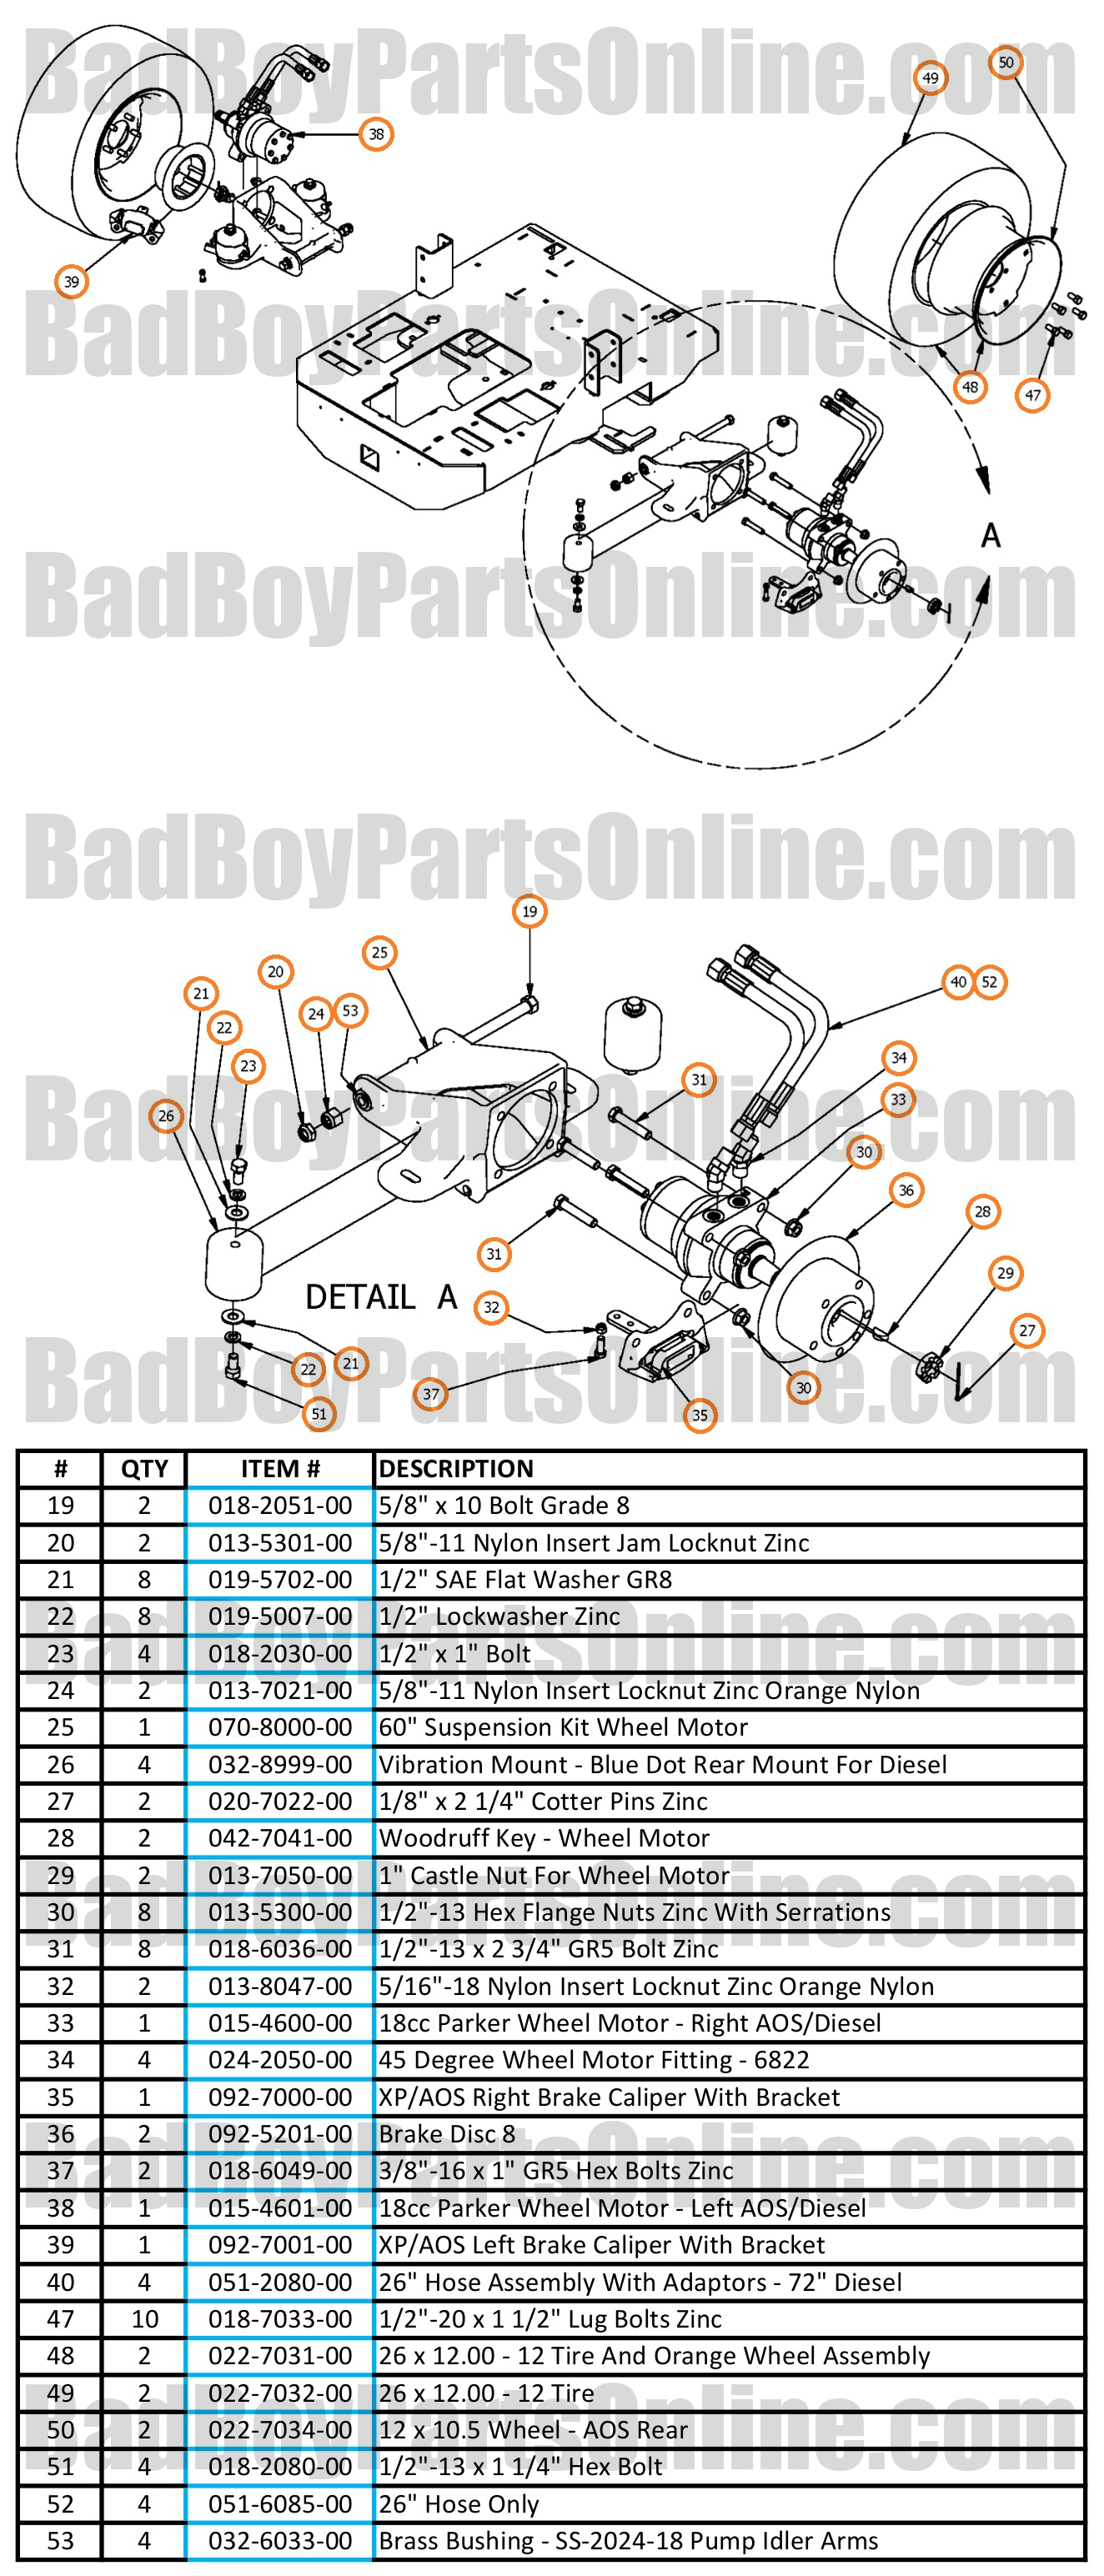 61 Inch Bad Boy Mower Wiring Diagram Electrical Diagrams Buggy Ambush 2017 Compact Diesel Wheel Motors And Rear Suspension Parts Schematic